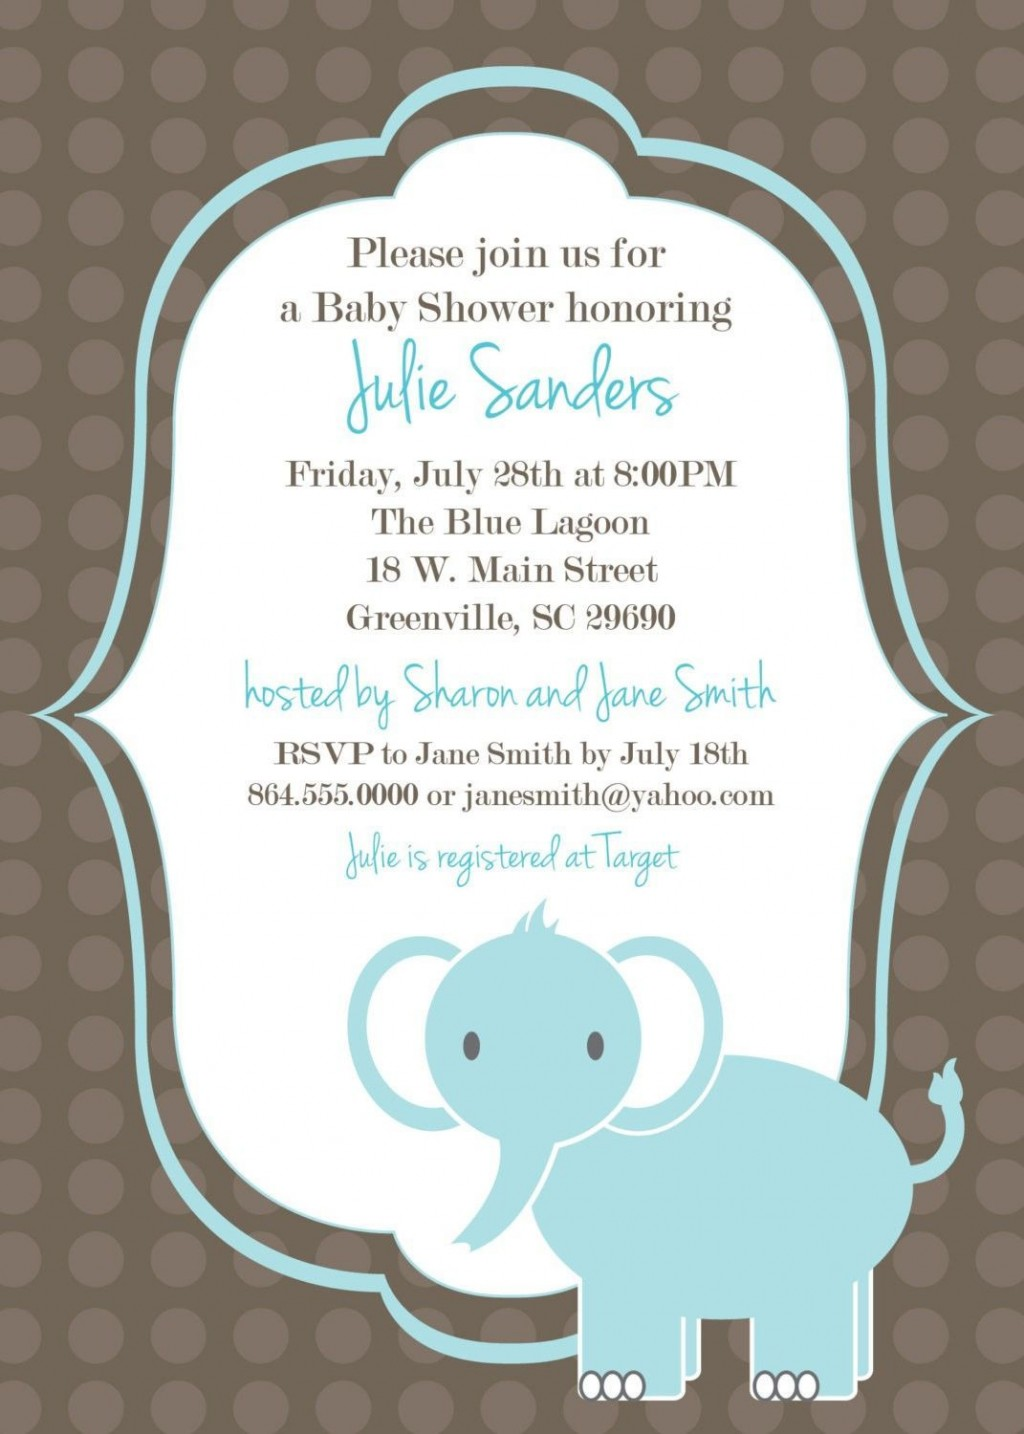 000 Awful Baby Shower Template Word Idea  Printable Search Free InvitationLarge